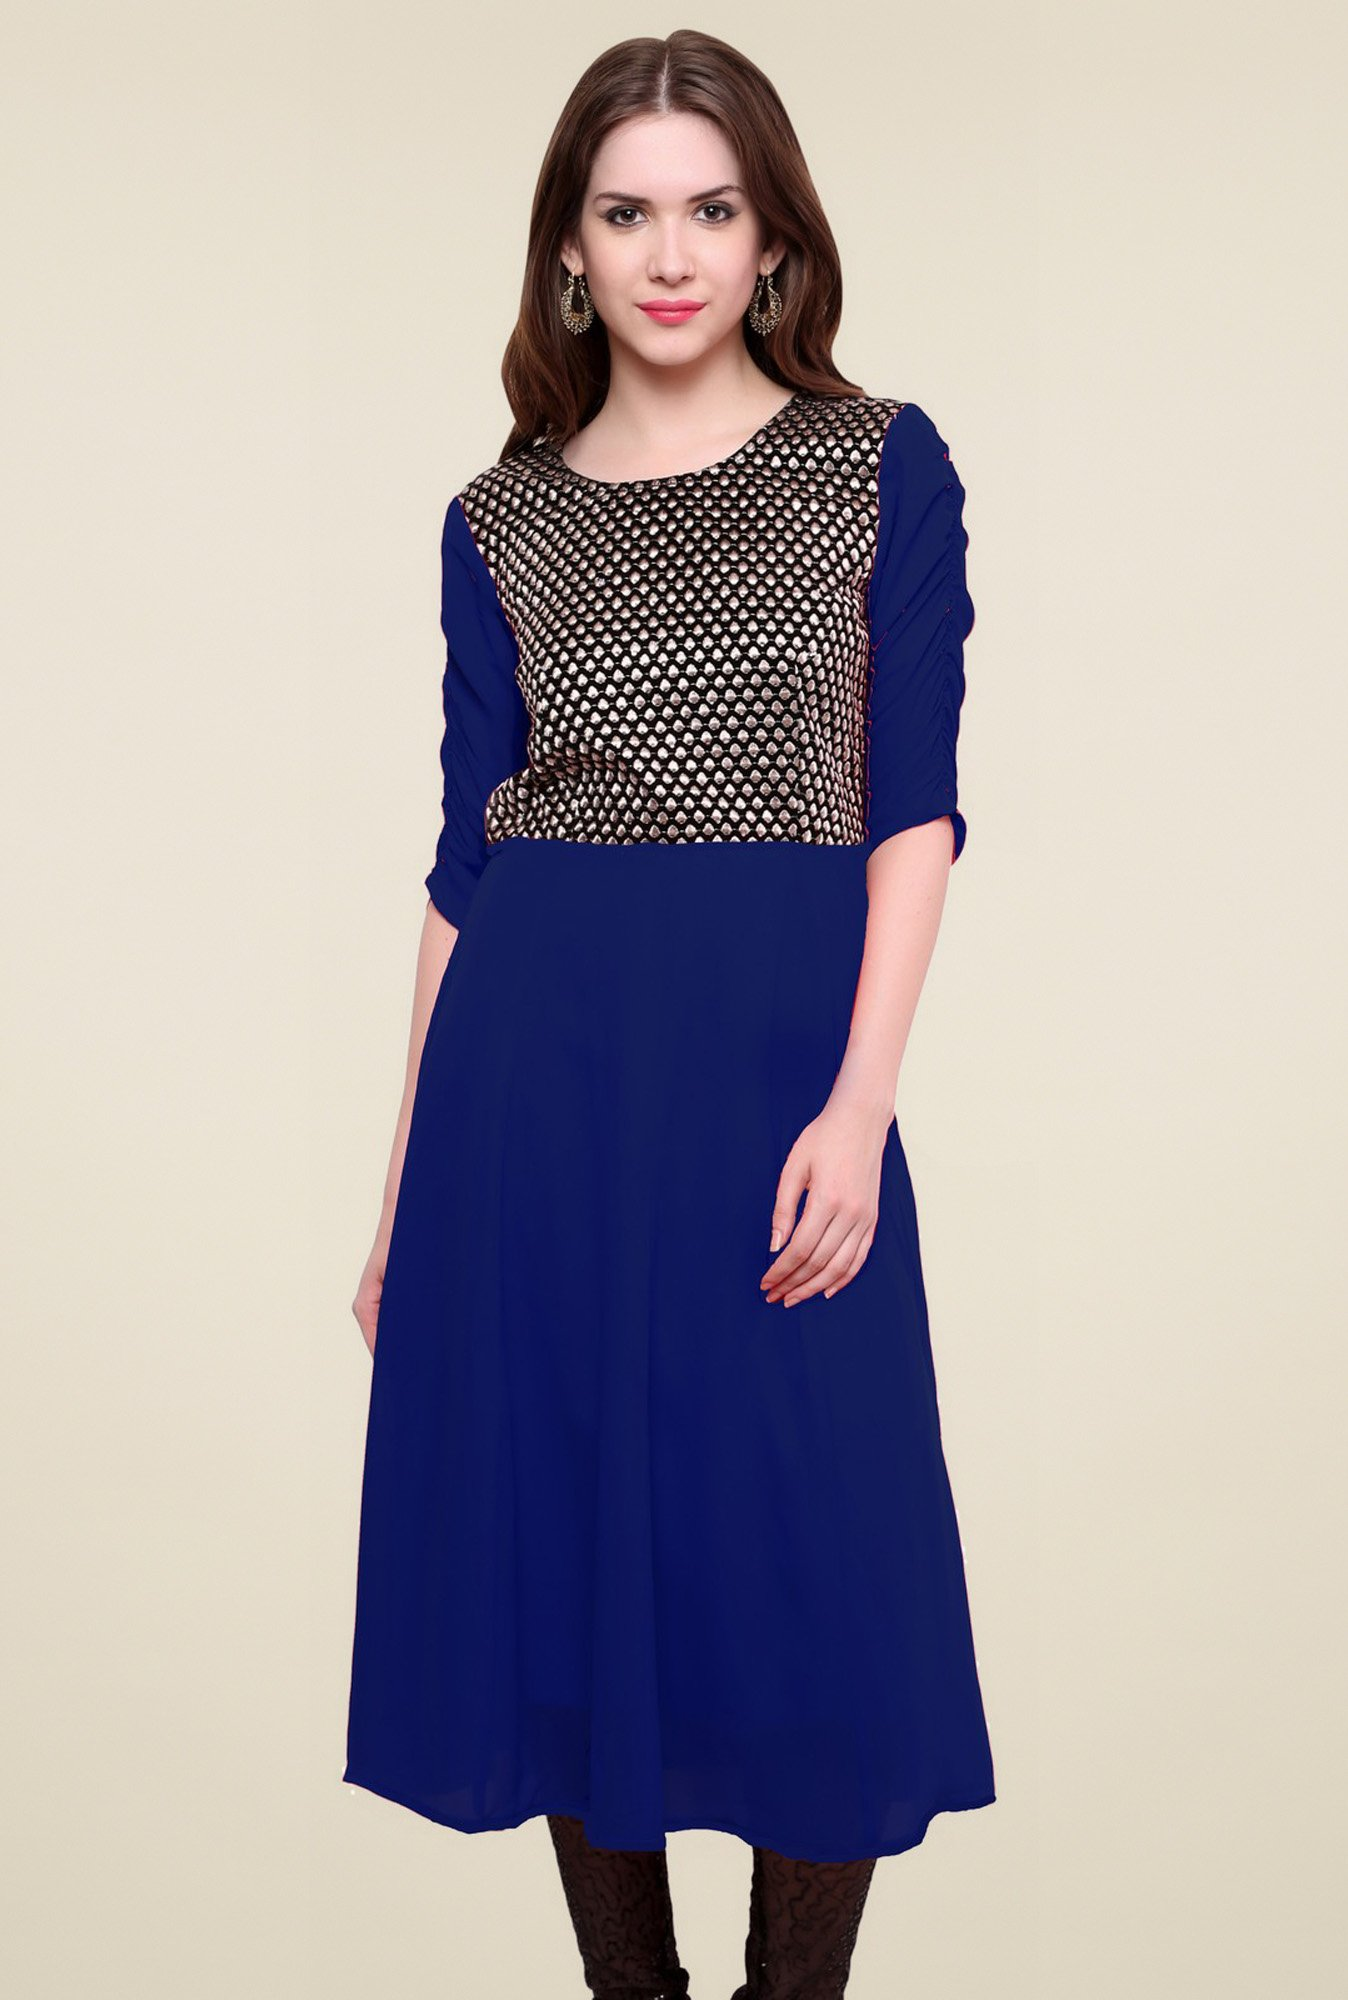 Pannkh Royal Blue Regular Fit Elbow Sleeves Kurti